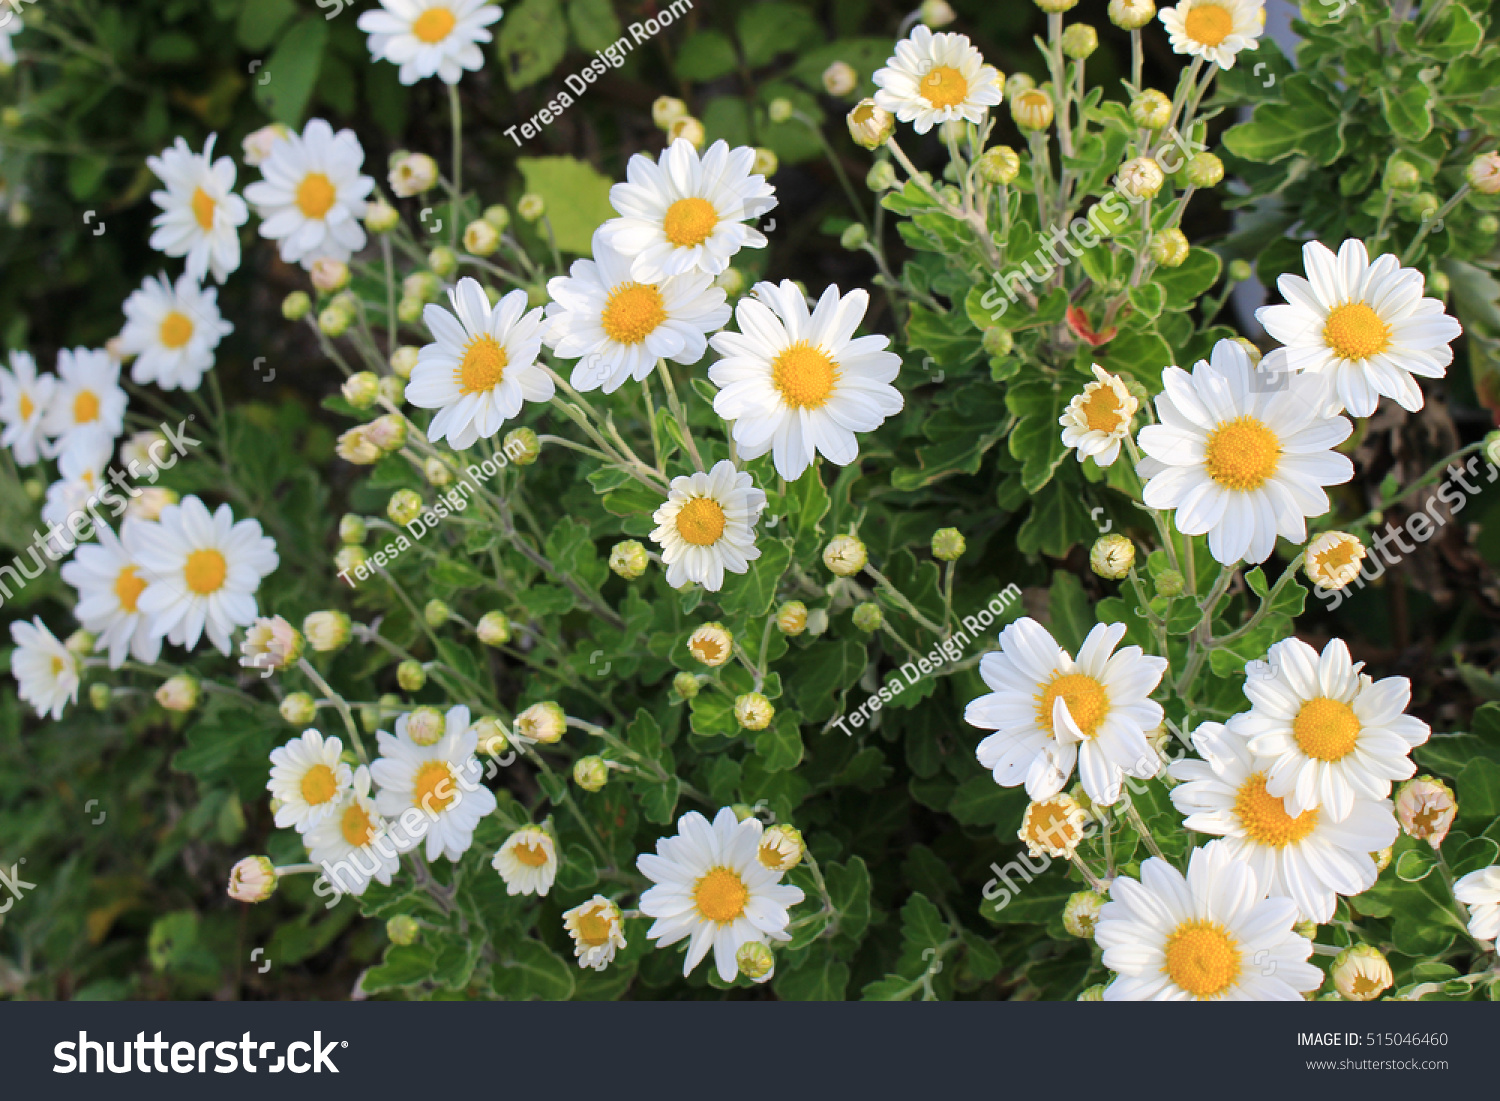 White little daisy flowers stock photo edit now 515046460 white little daisy flowers izmirmasajfo